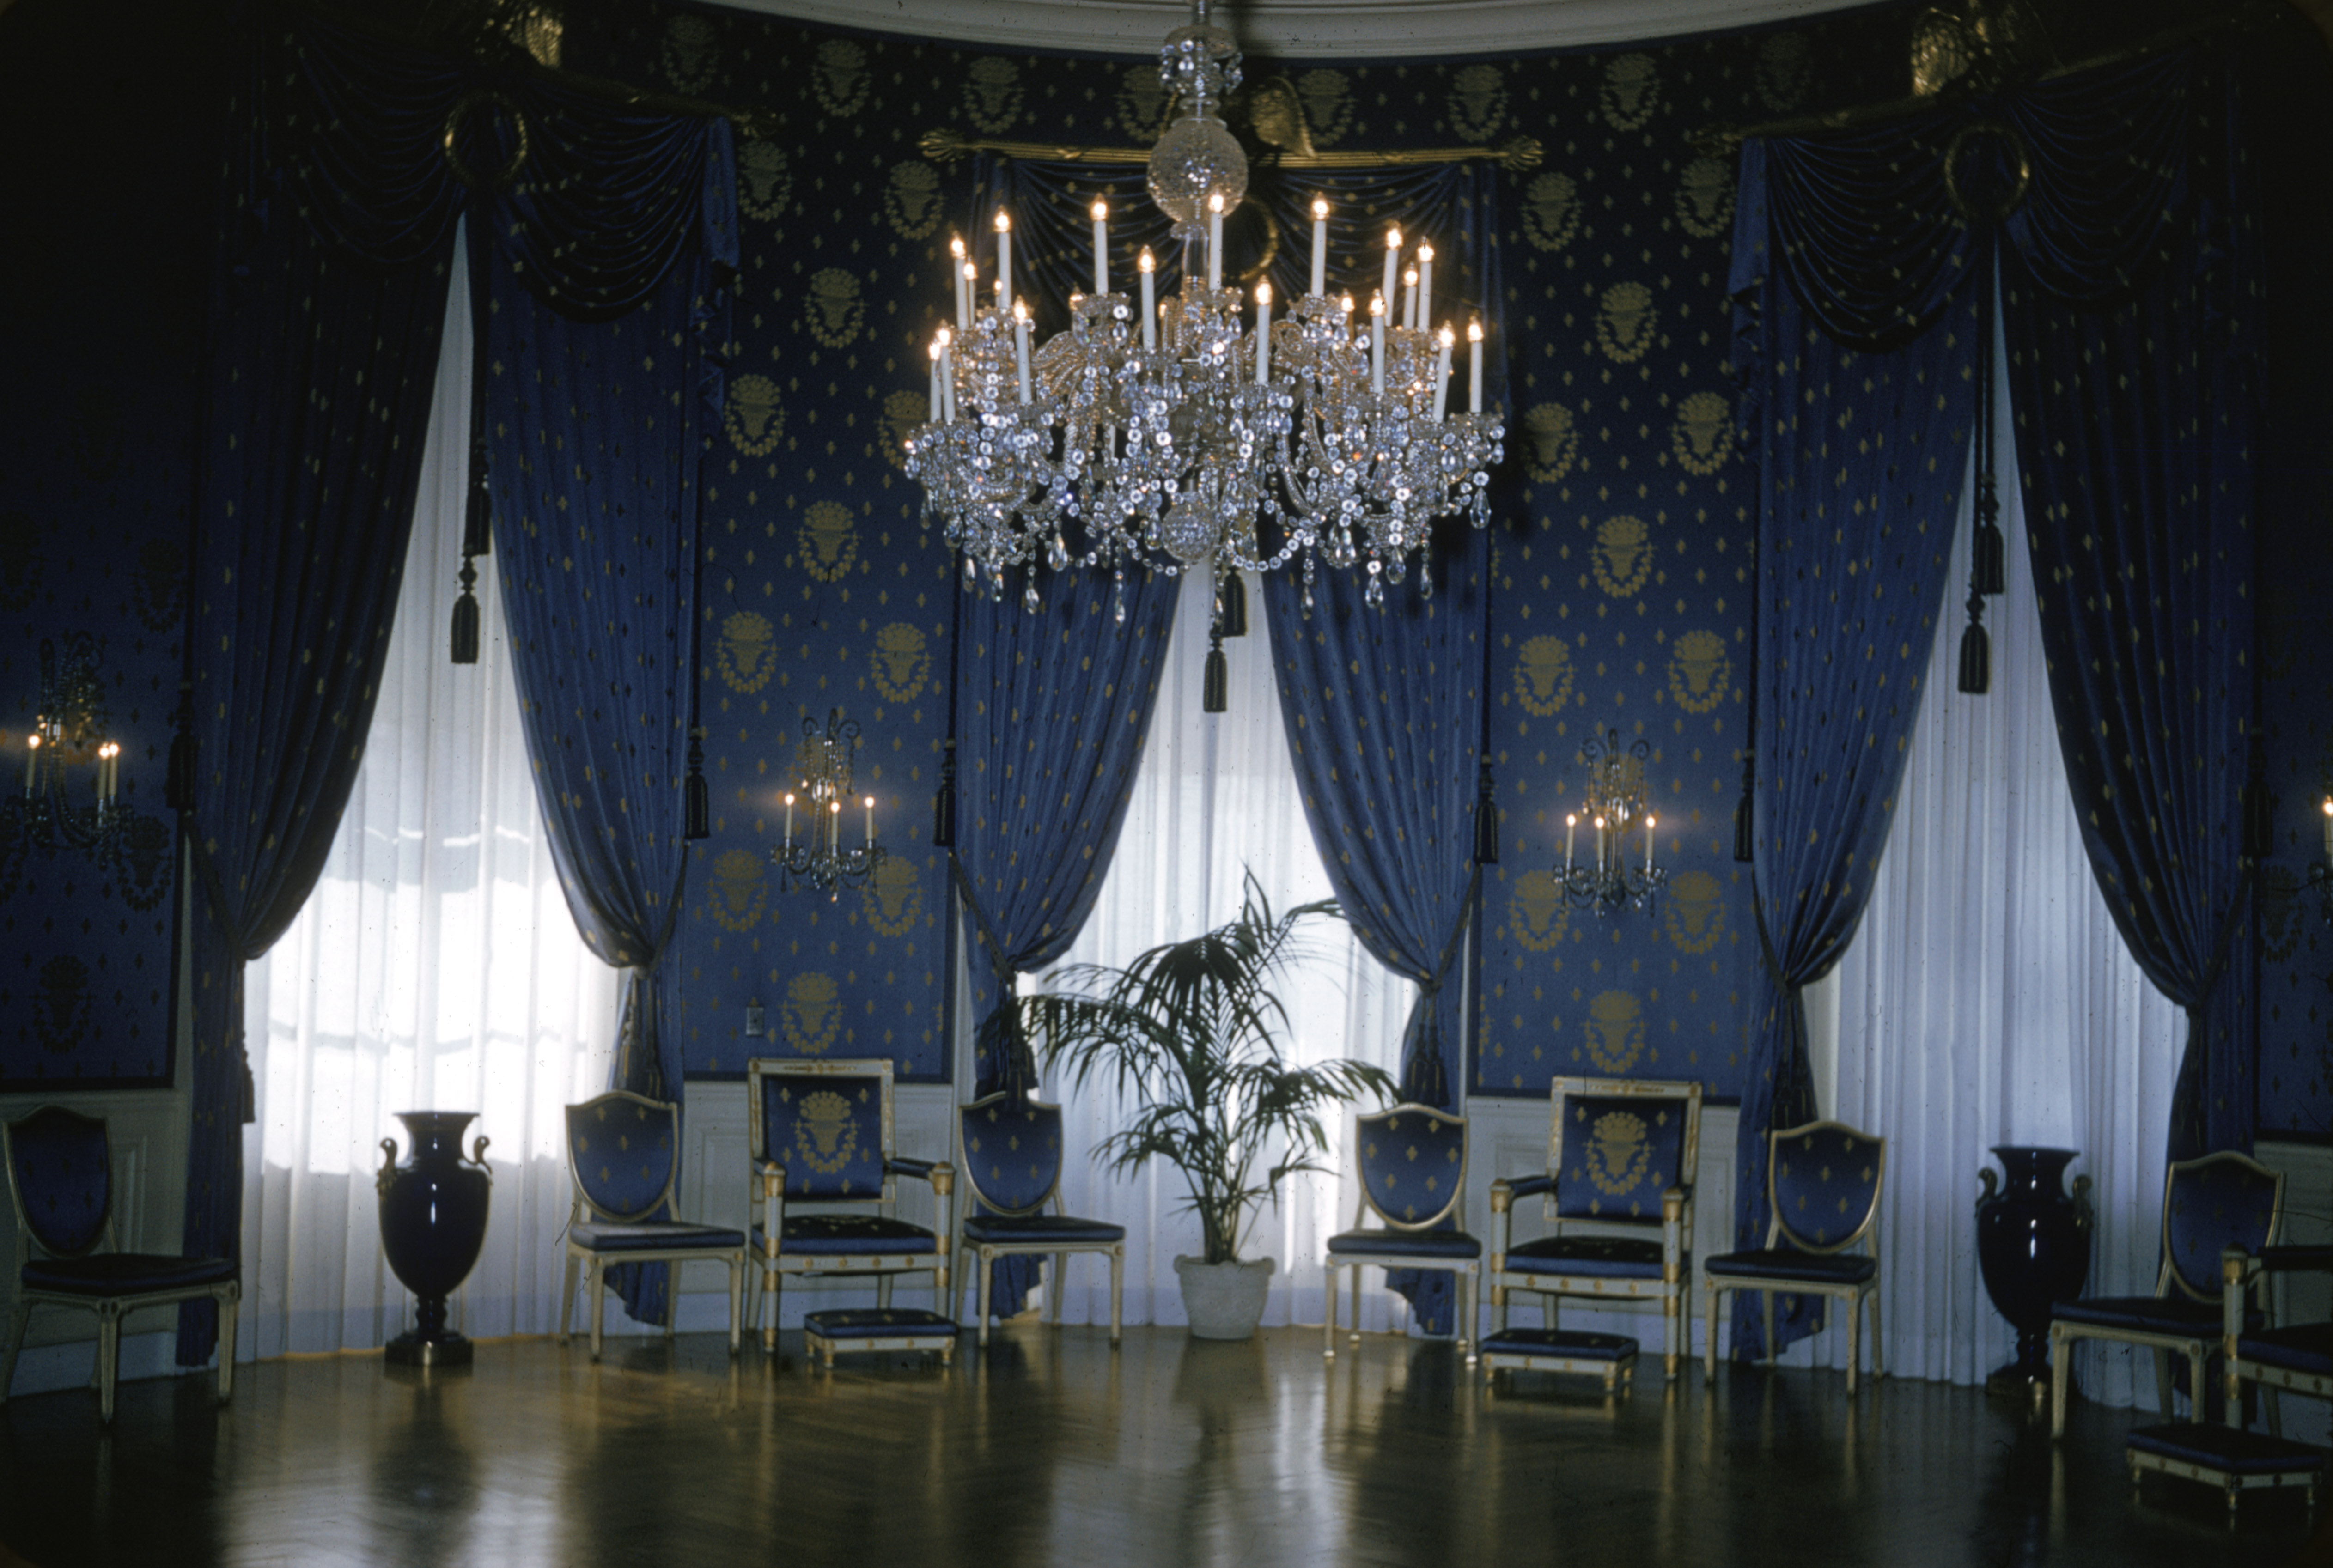 Interior view of the Blue Room at the White House, Washington, D.C., 1970s. (Photo by Harvey Meston/Getty Images)